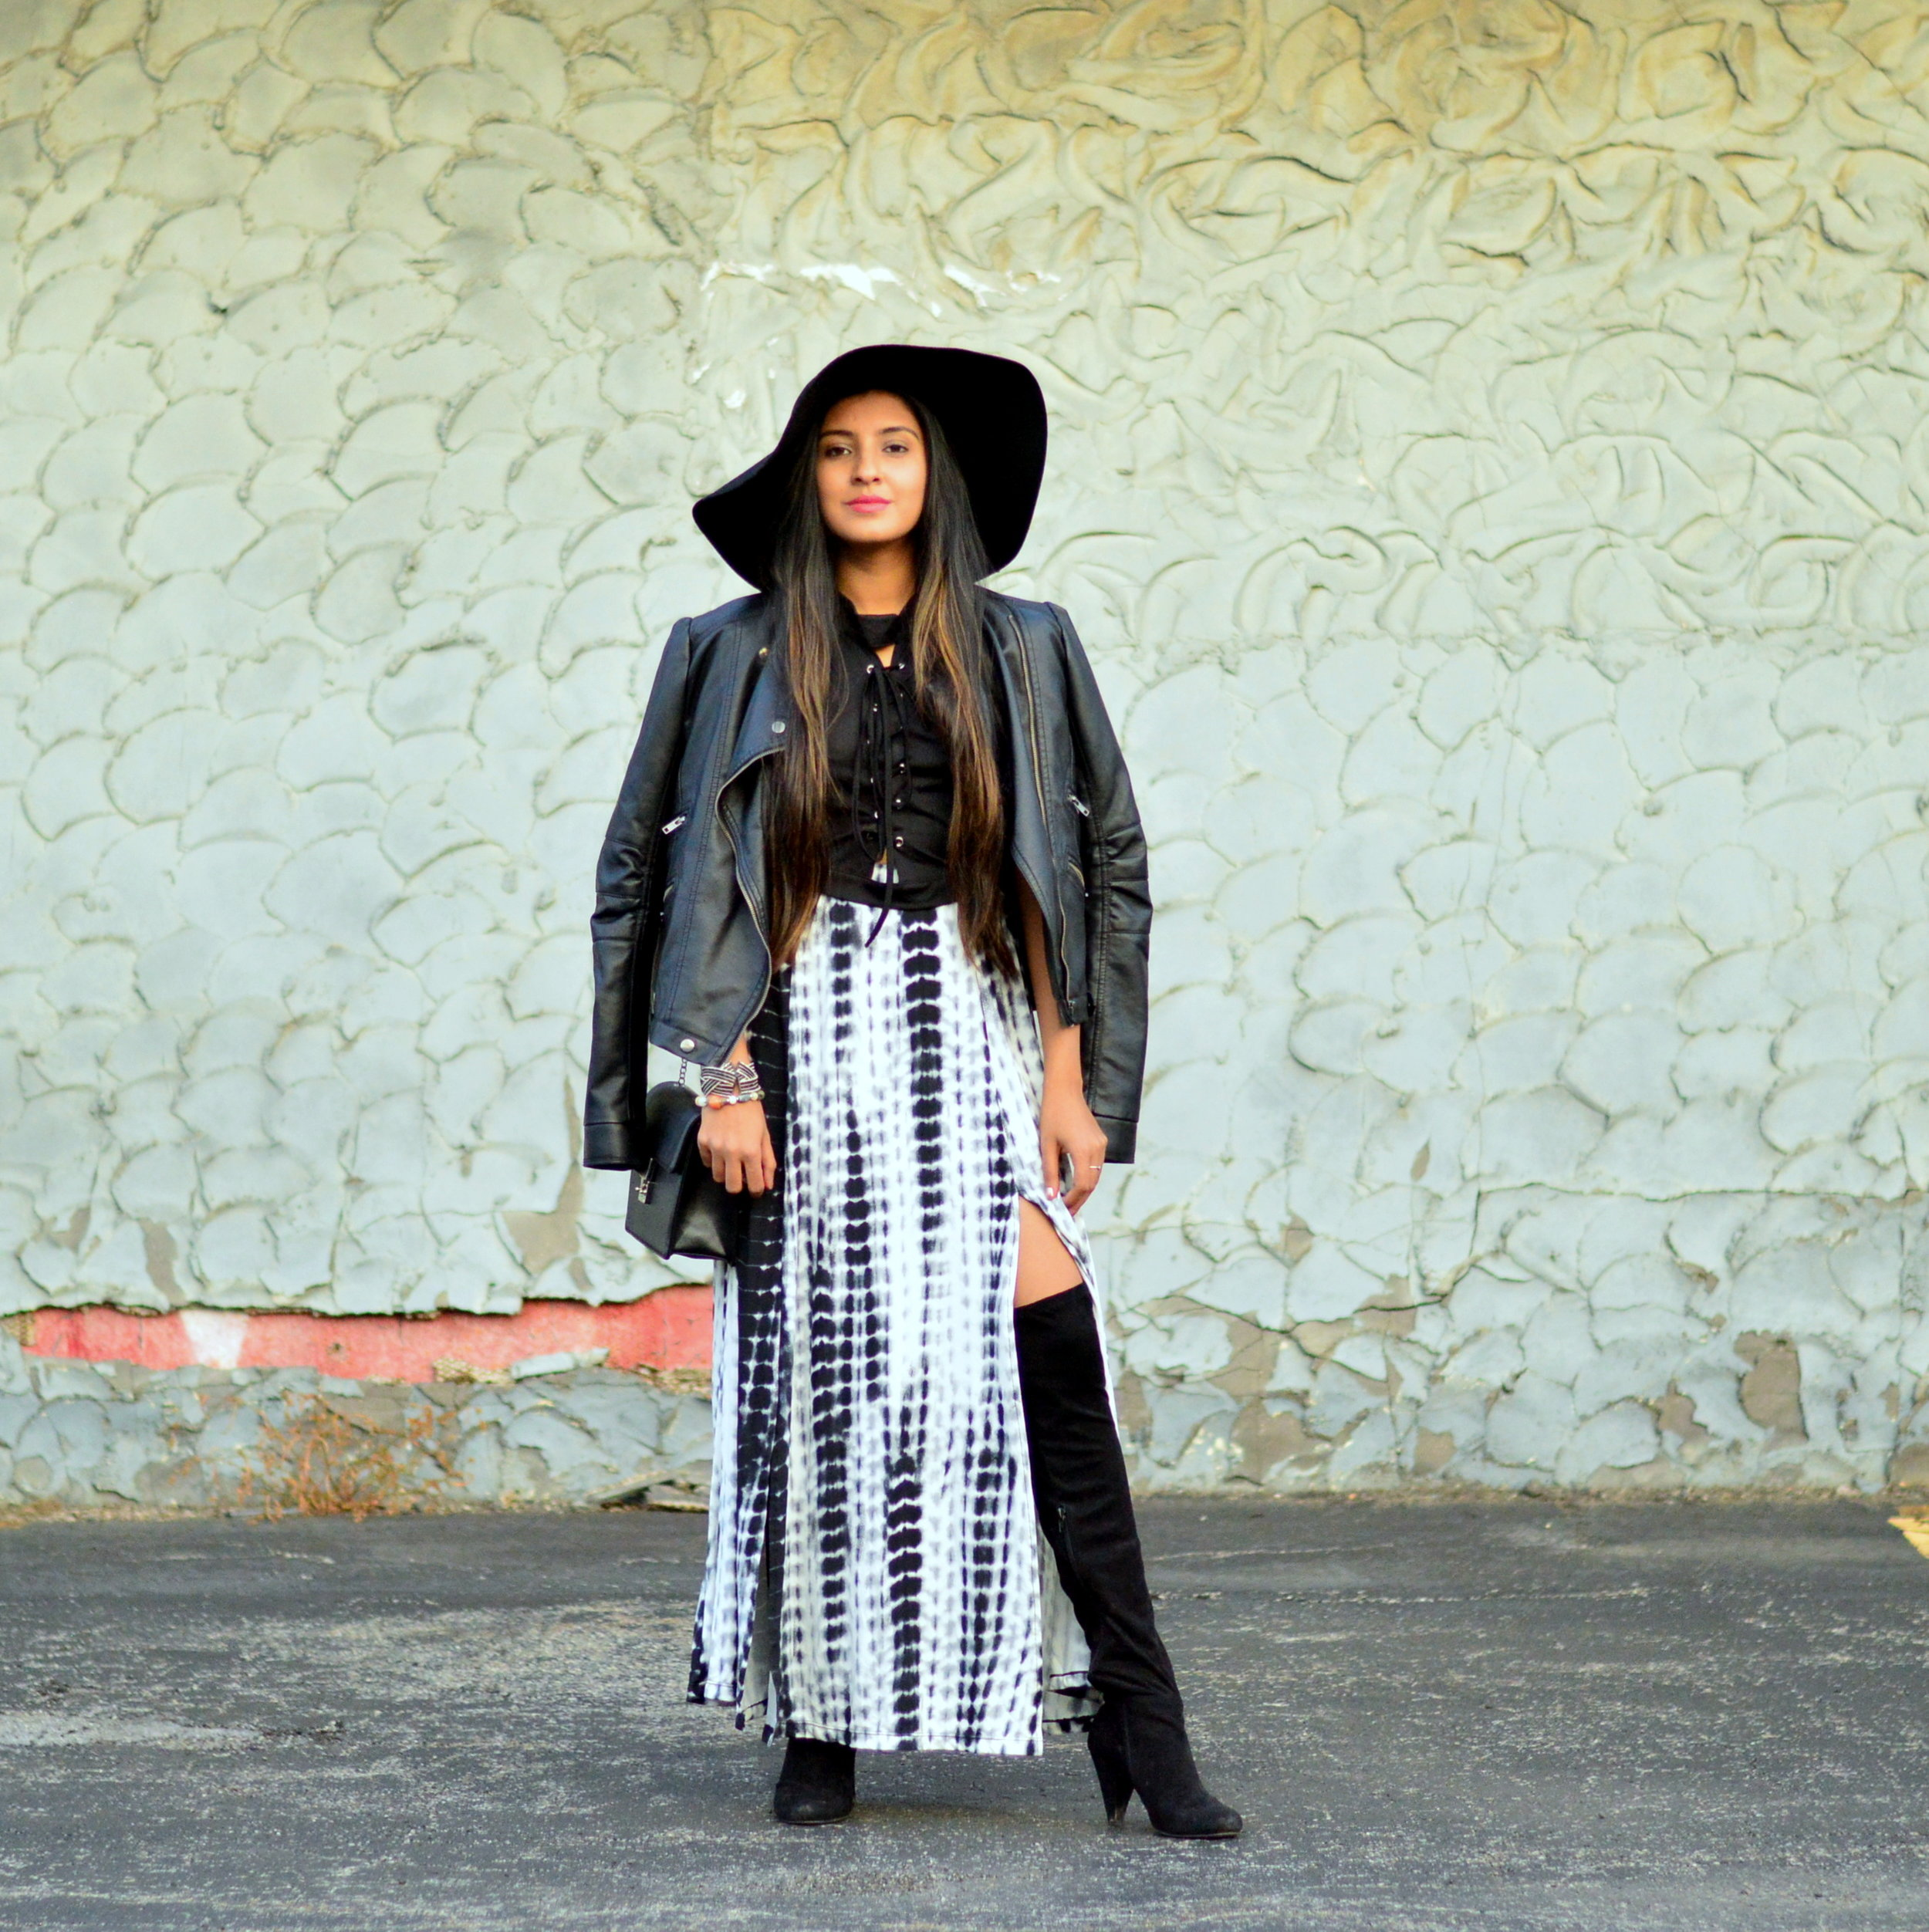 tie-dye-maxi-skirt-leather-jacket-boho-chic-over-the-knee-boots-winter-style 3